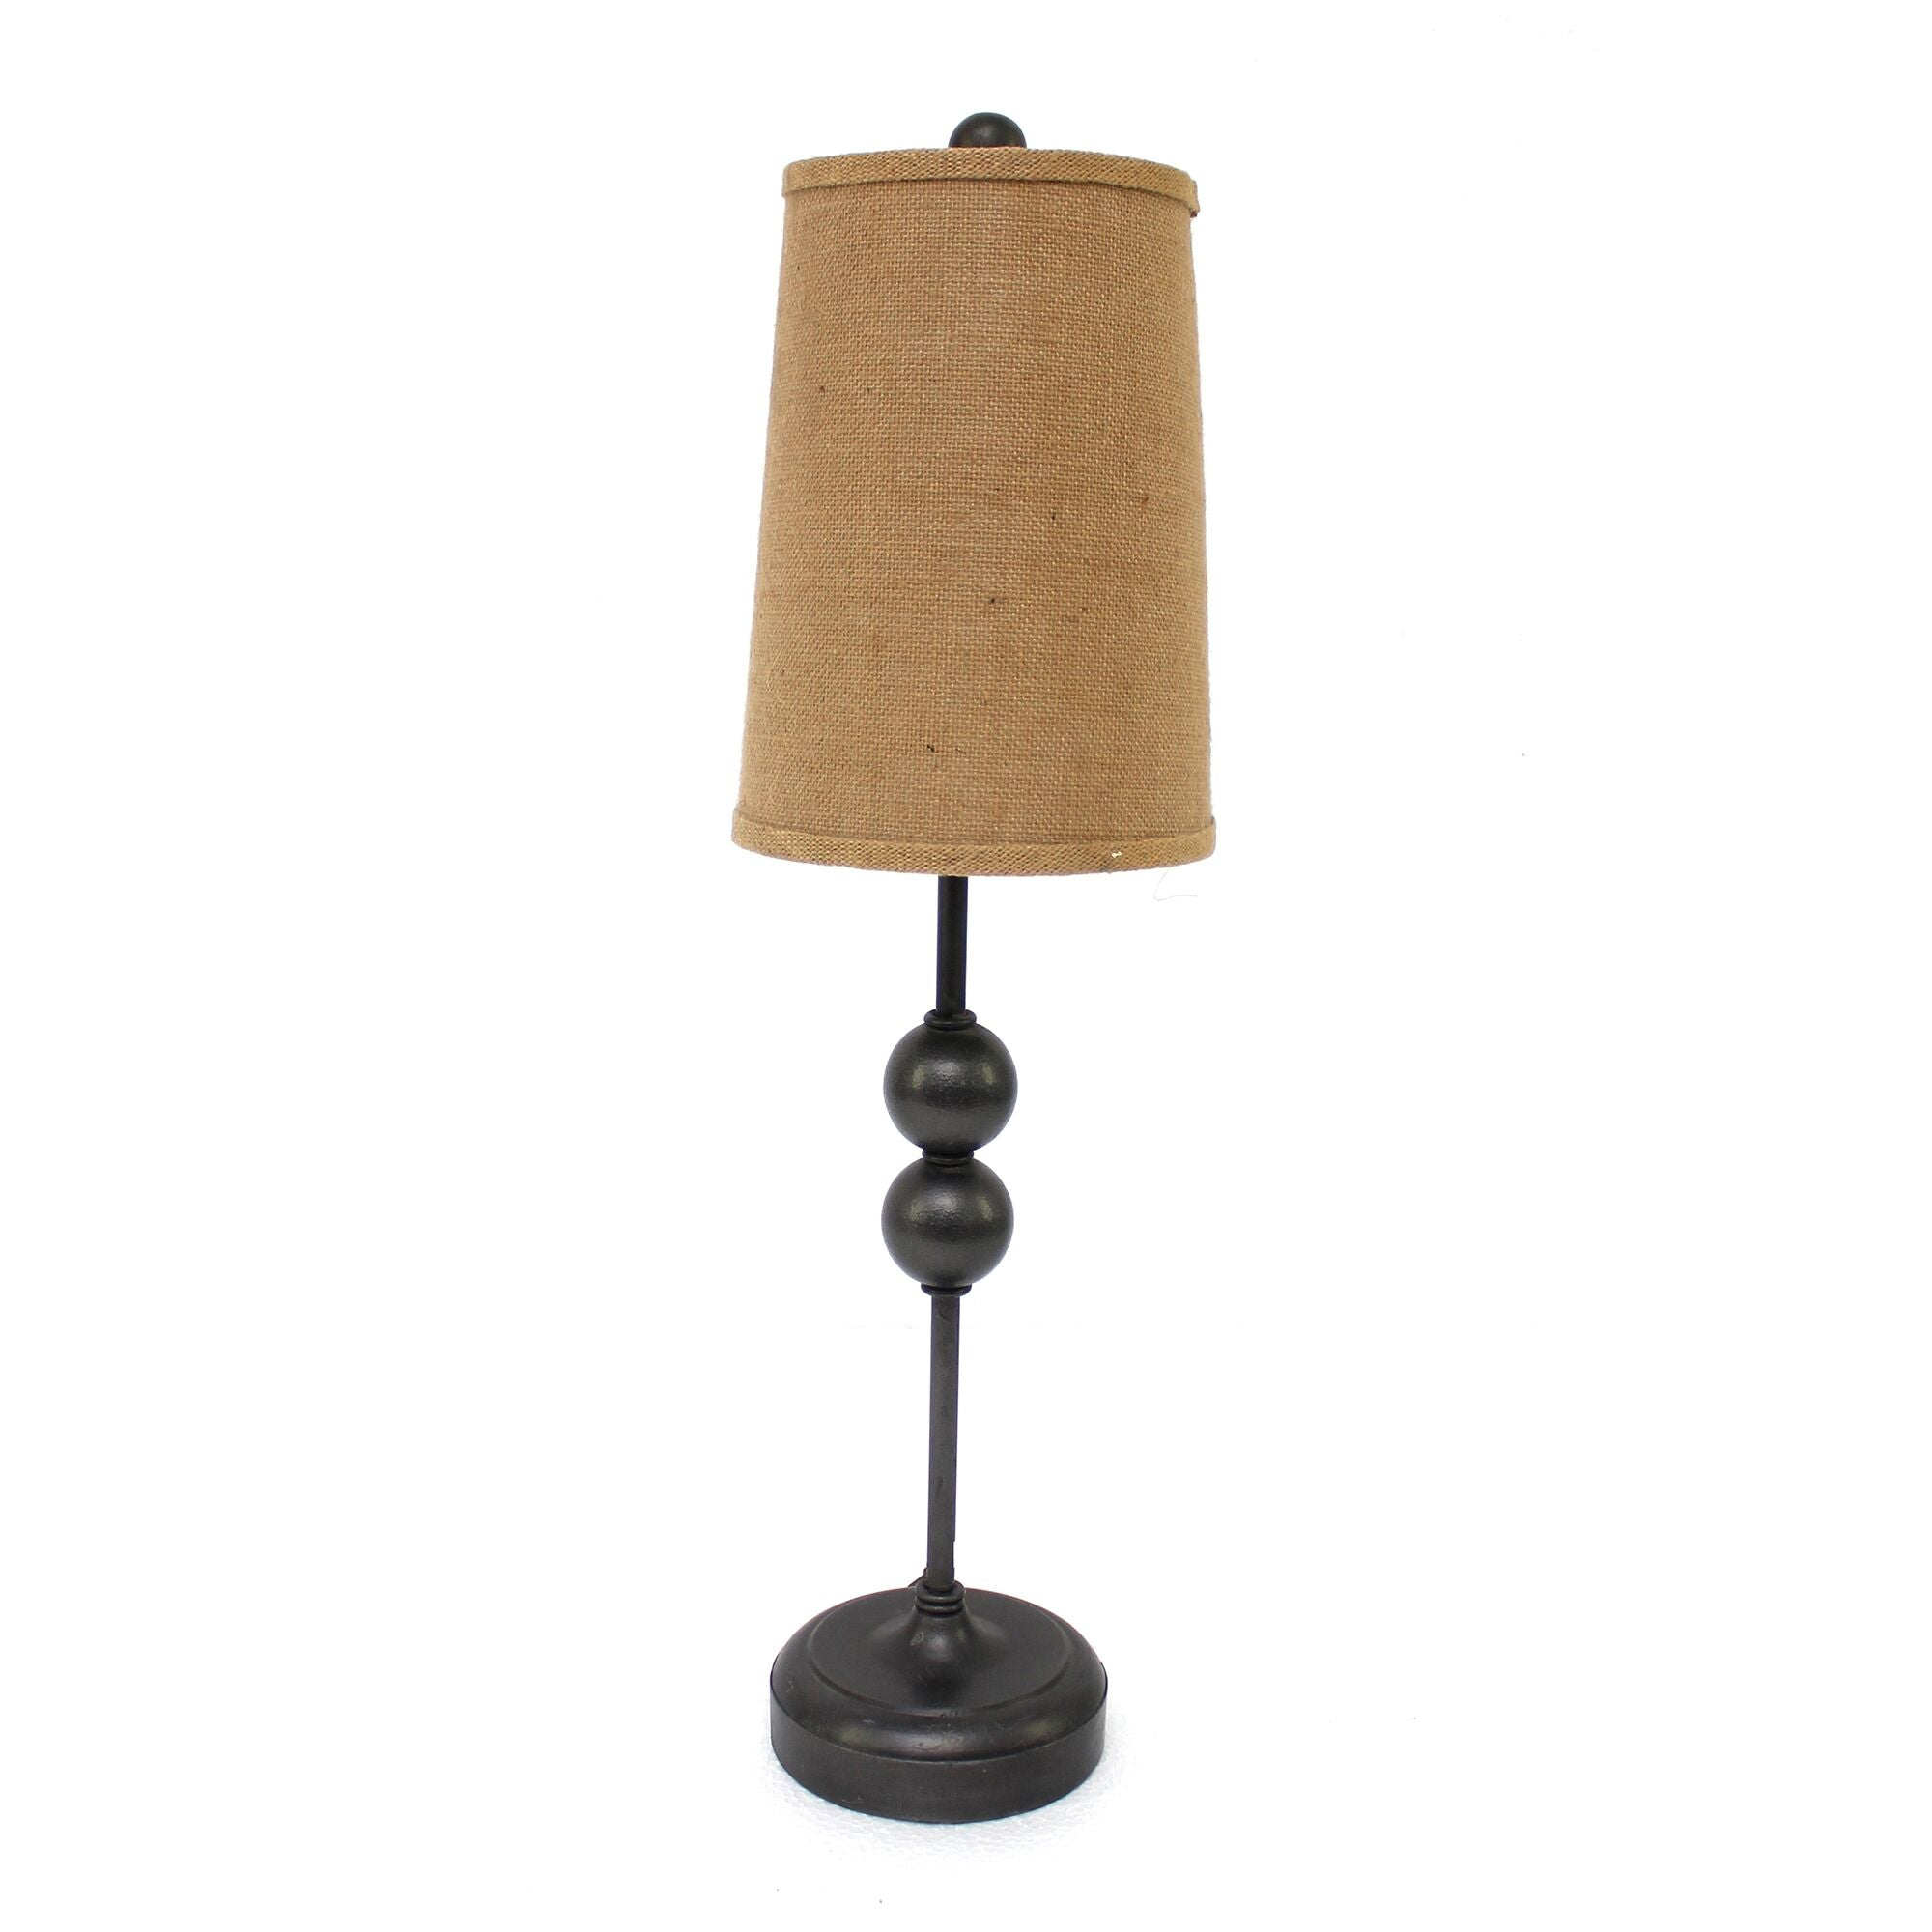 "8"" x 7"" x 29"" Bronze, Minimalist - Accent Table Lamp"